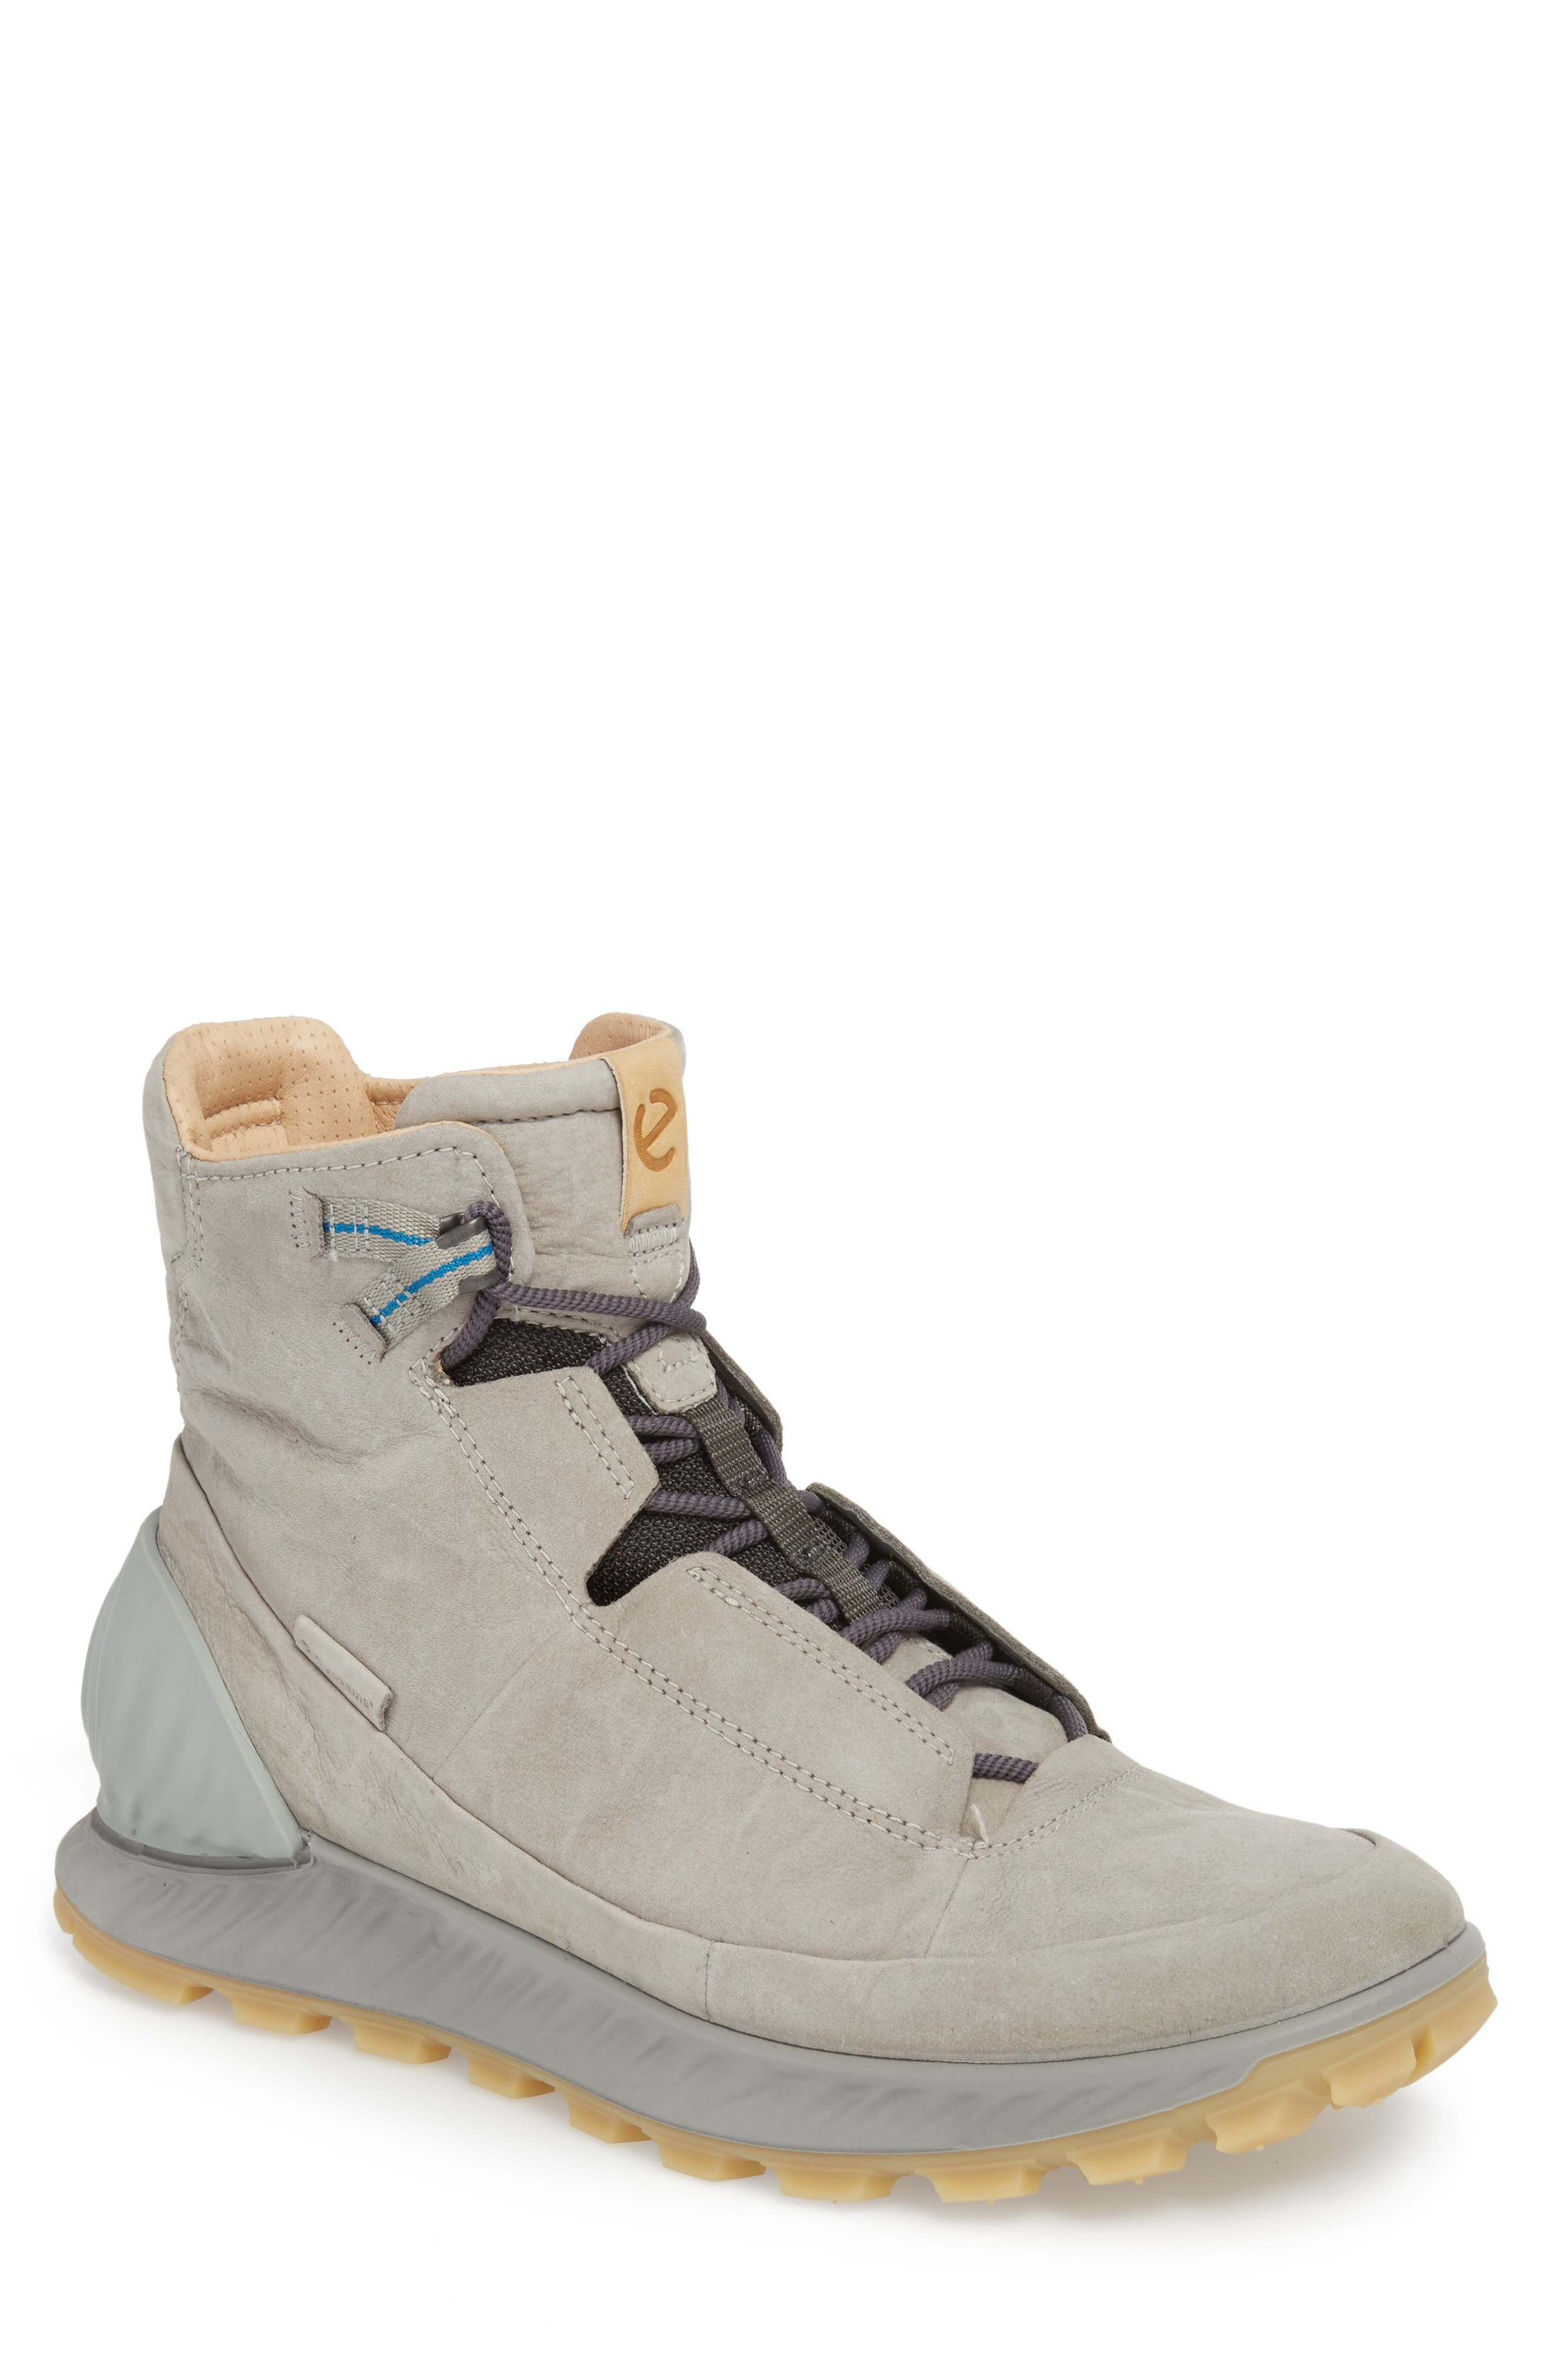 Limited Edition Exostrike Dyneema Sneaker Boot,                         Main,                         color, Wild Dove Leather